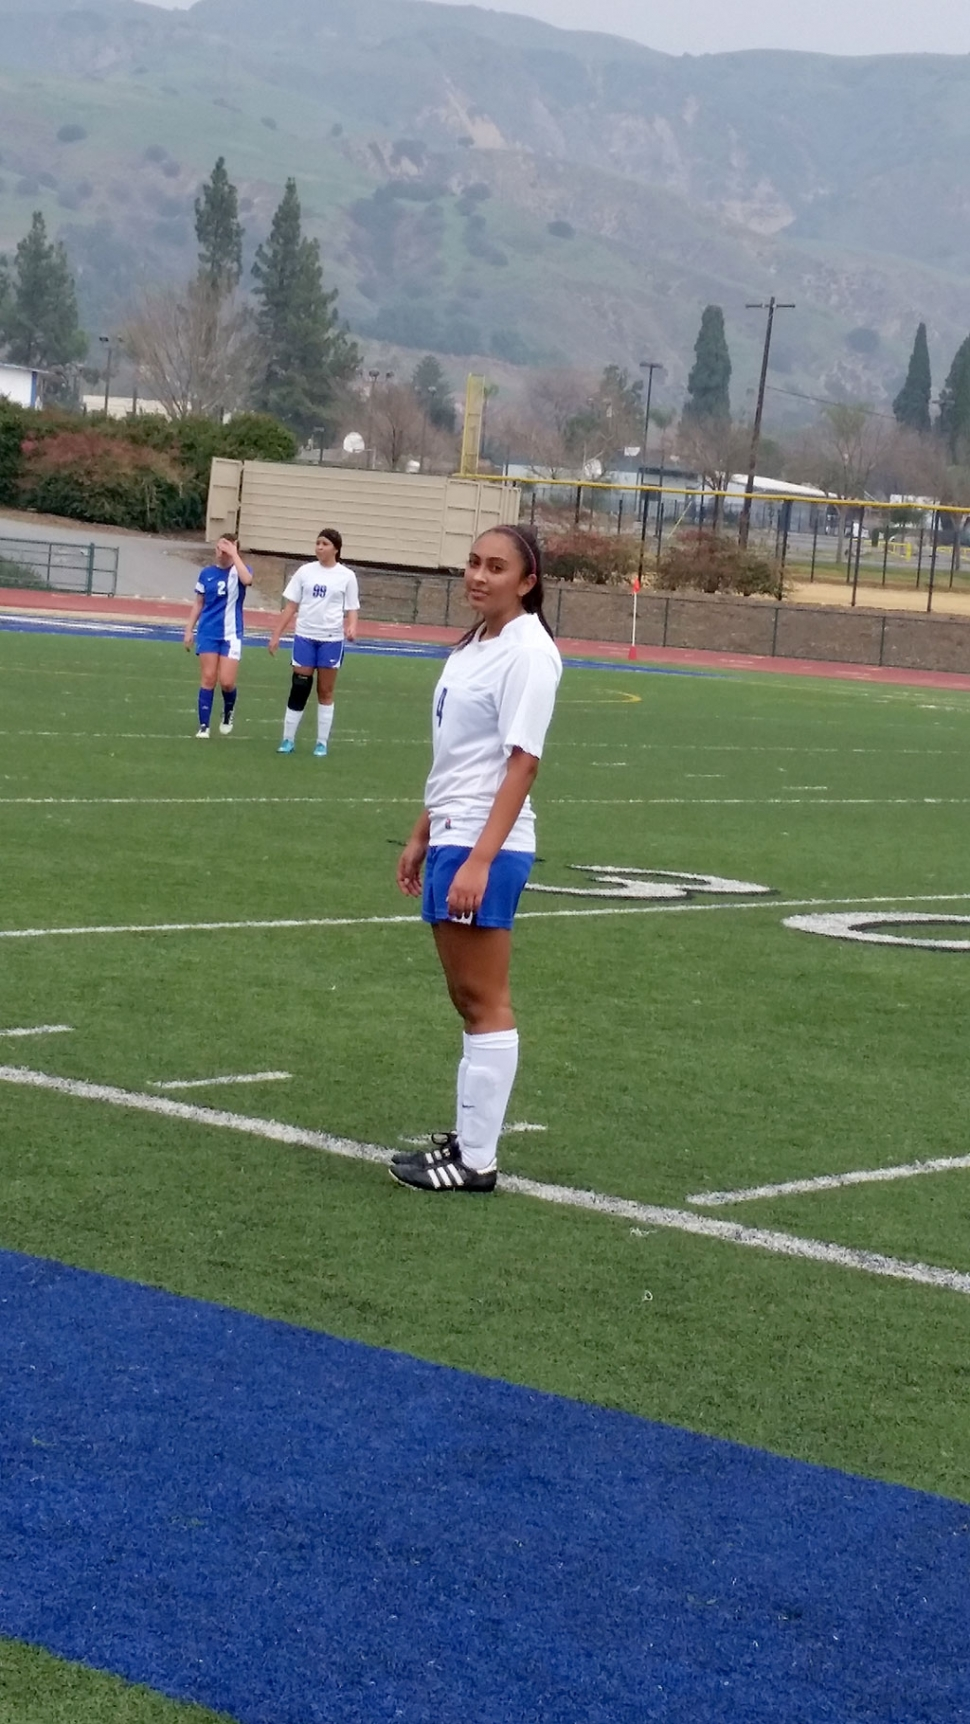 Fillmore won Vs Cate 2-0 behind Esmeralda Murillo 's two goals. JD Delarosa & Naye Baez assisted on the goals. Yari Vasquez, Ana Rincon, Maria Auarez & JD Delarosa played well defensively. Esmeralda Murillo & Reylene Martinez look on during a substitution. Fillmore 6-2-2. League 1-1-0.